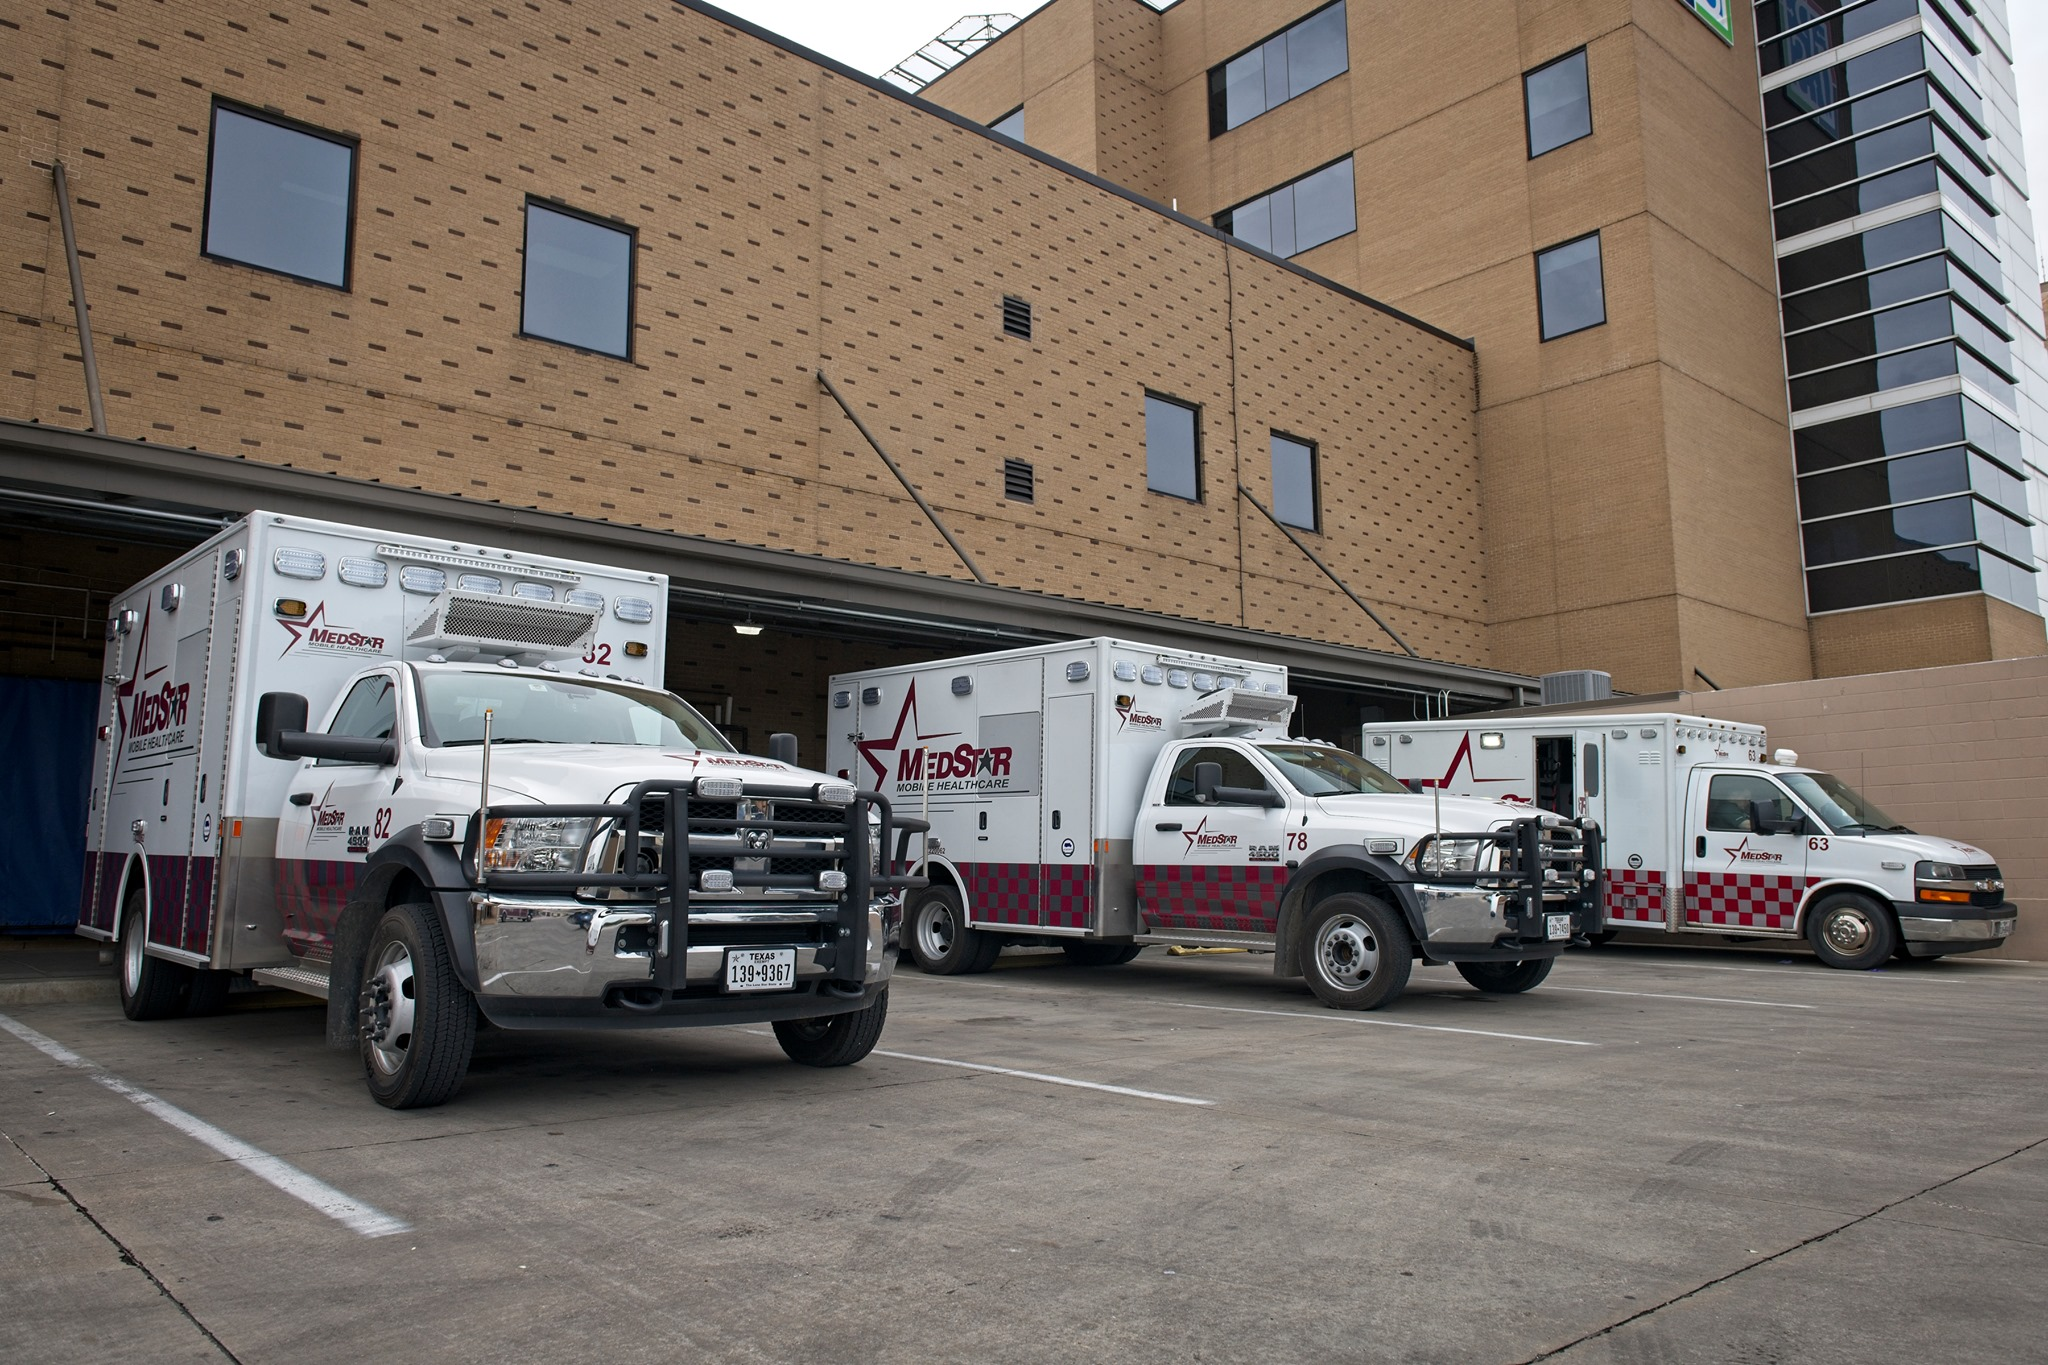 Community Release: MedStar to Limit Non-Patient Passengers on Ambulances